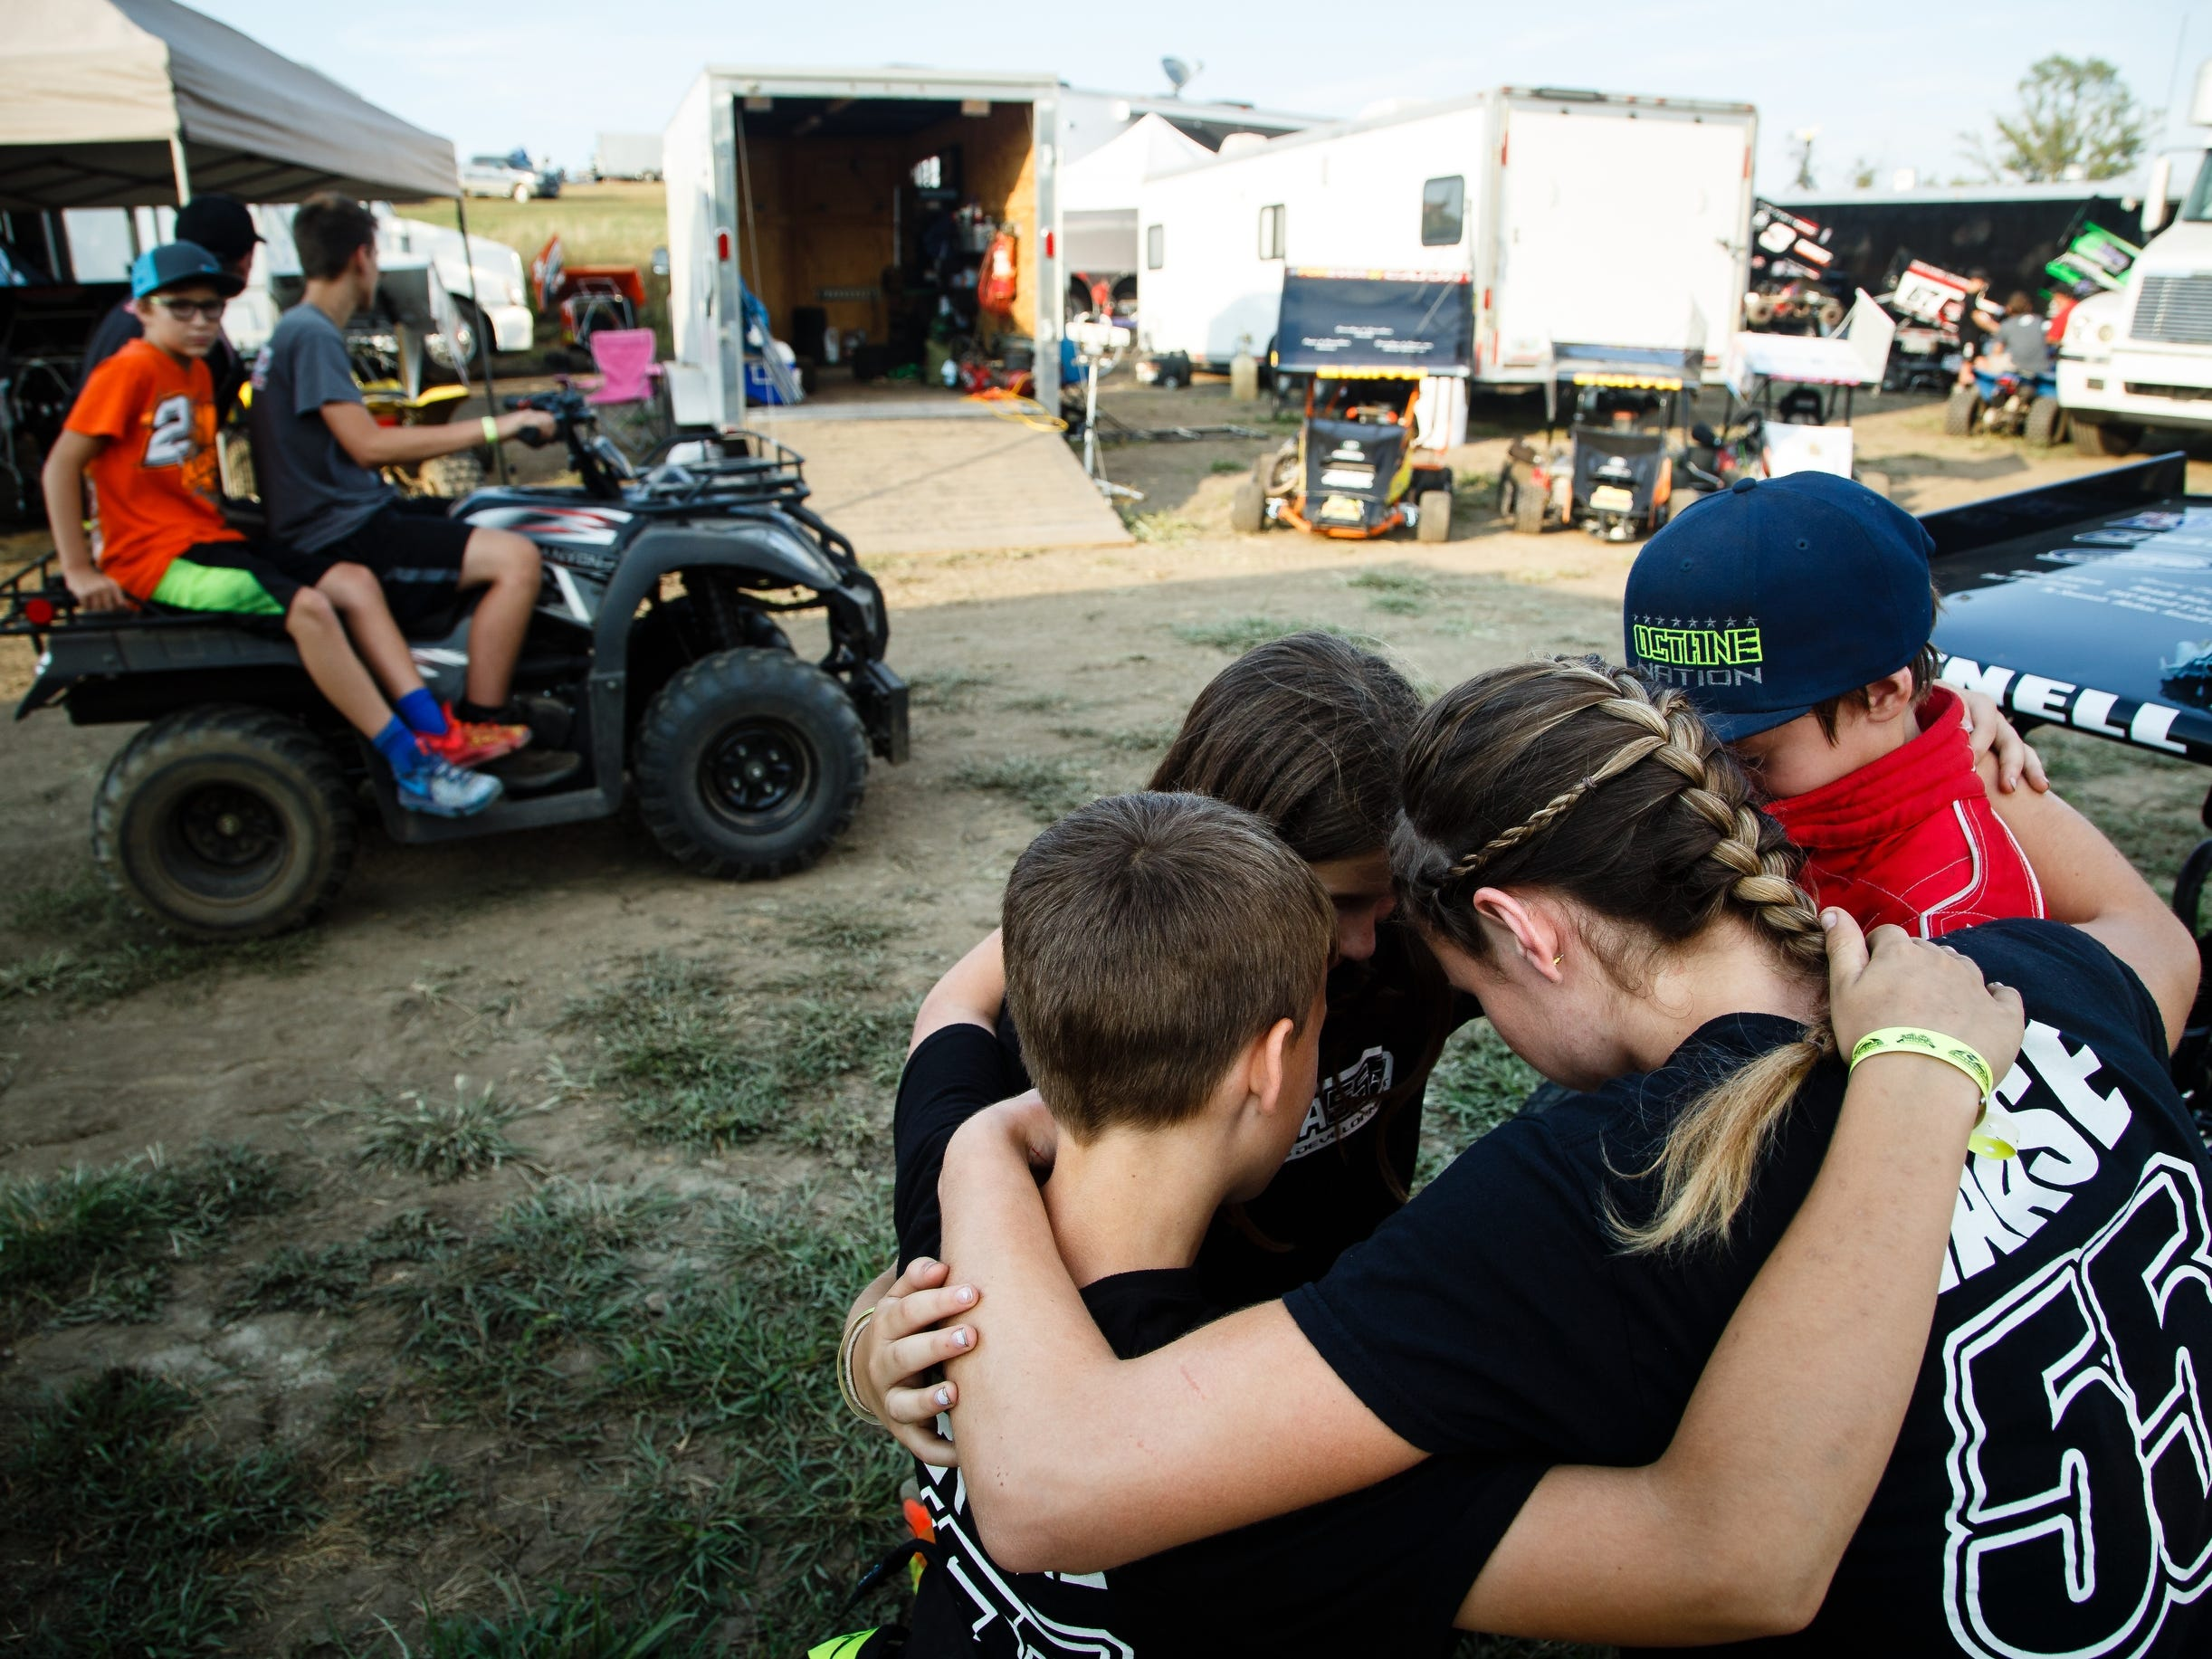 McKenna Haase, bottom right, leads her racing development team in saying the Racer's Prayer before they race during Nationals at the English Creek Speedway on Tuesday, Aug. 7, 2018 in Knoxville.